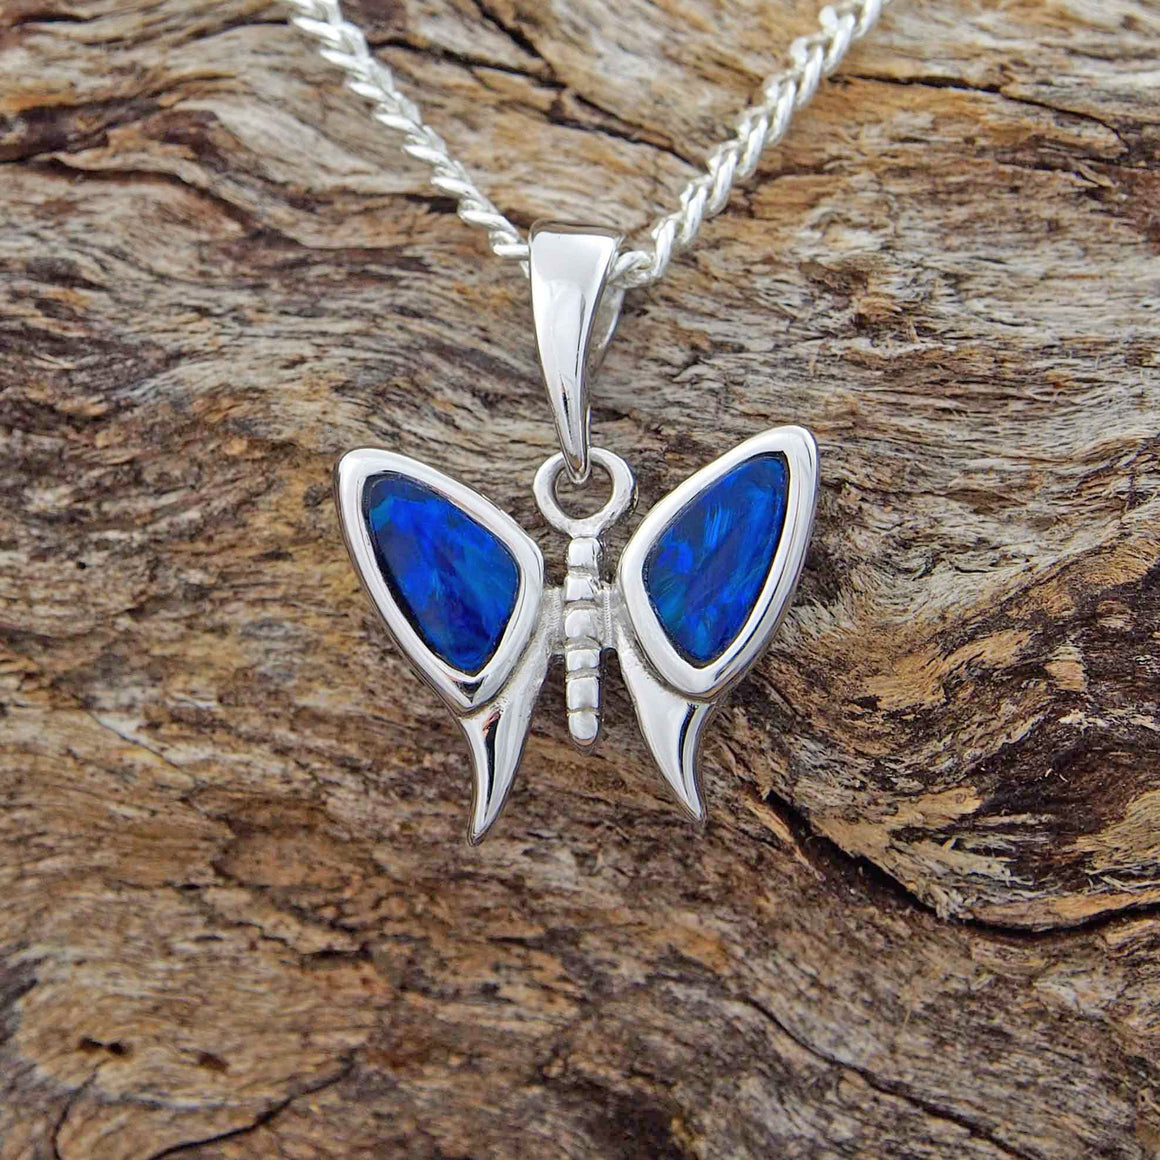 Sterling silver butterfly necklace pendant bezel set with two bright, blue coloured triangle-shaped doublet opals.